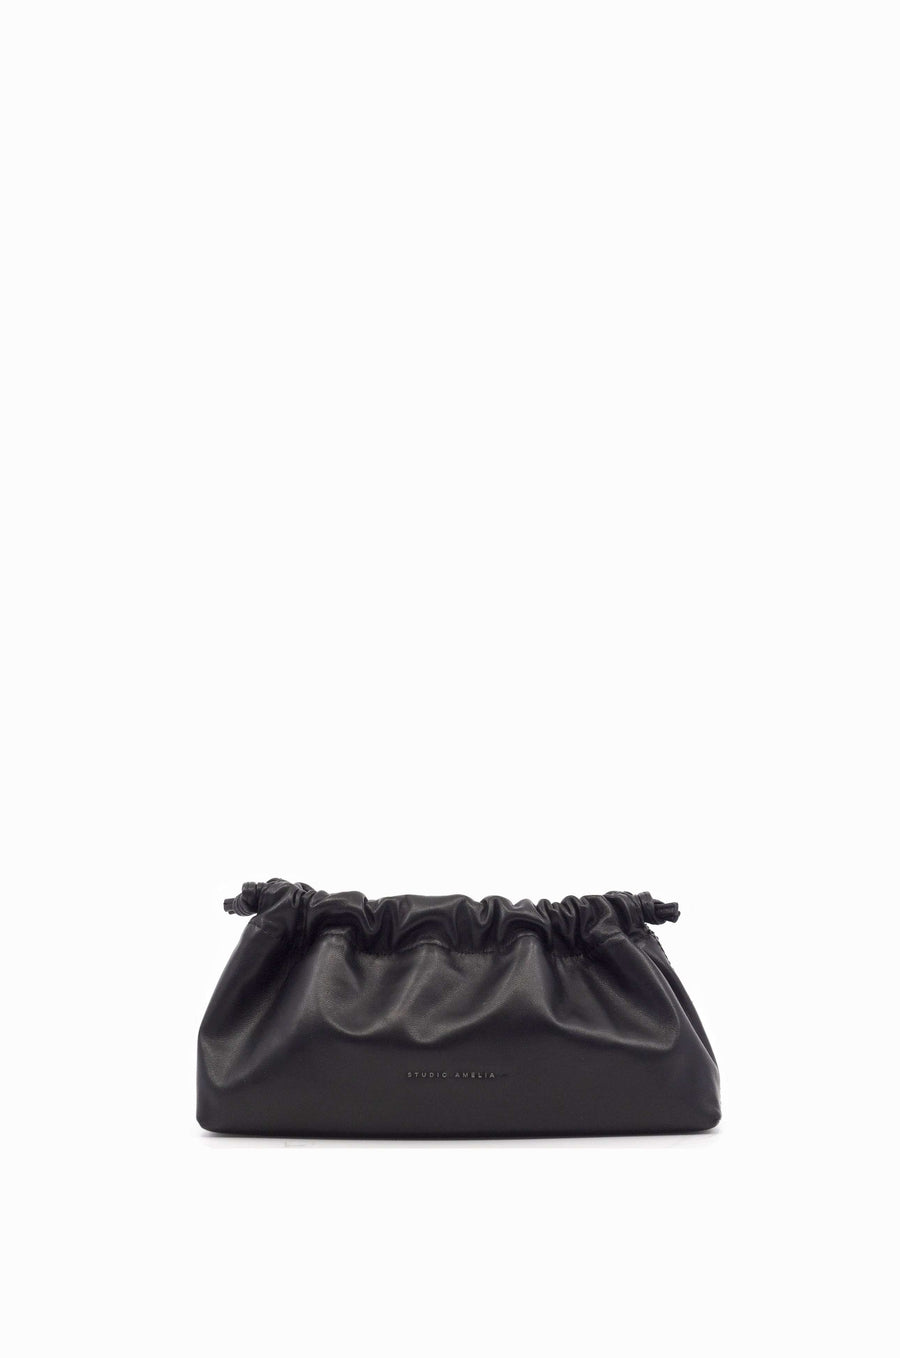 1.1 Black Mini Bag